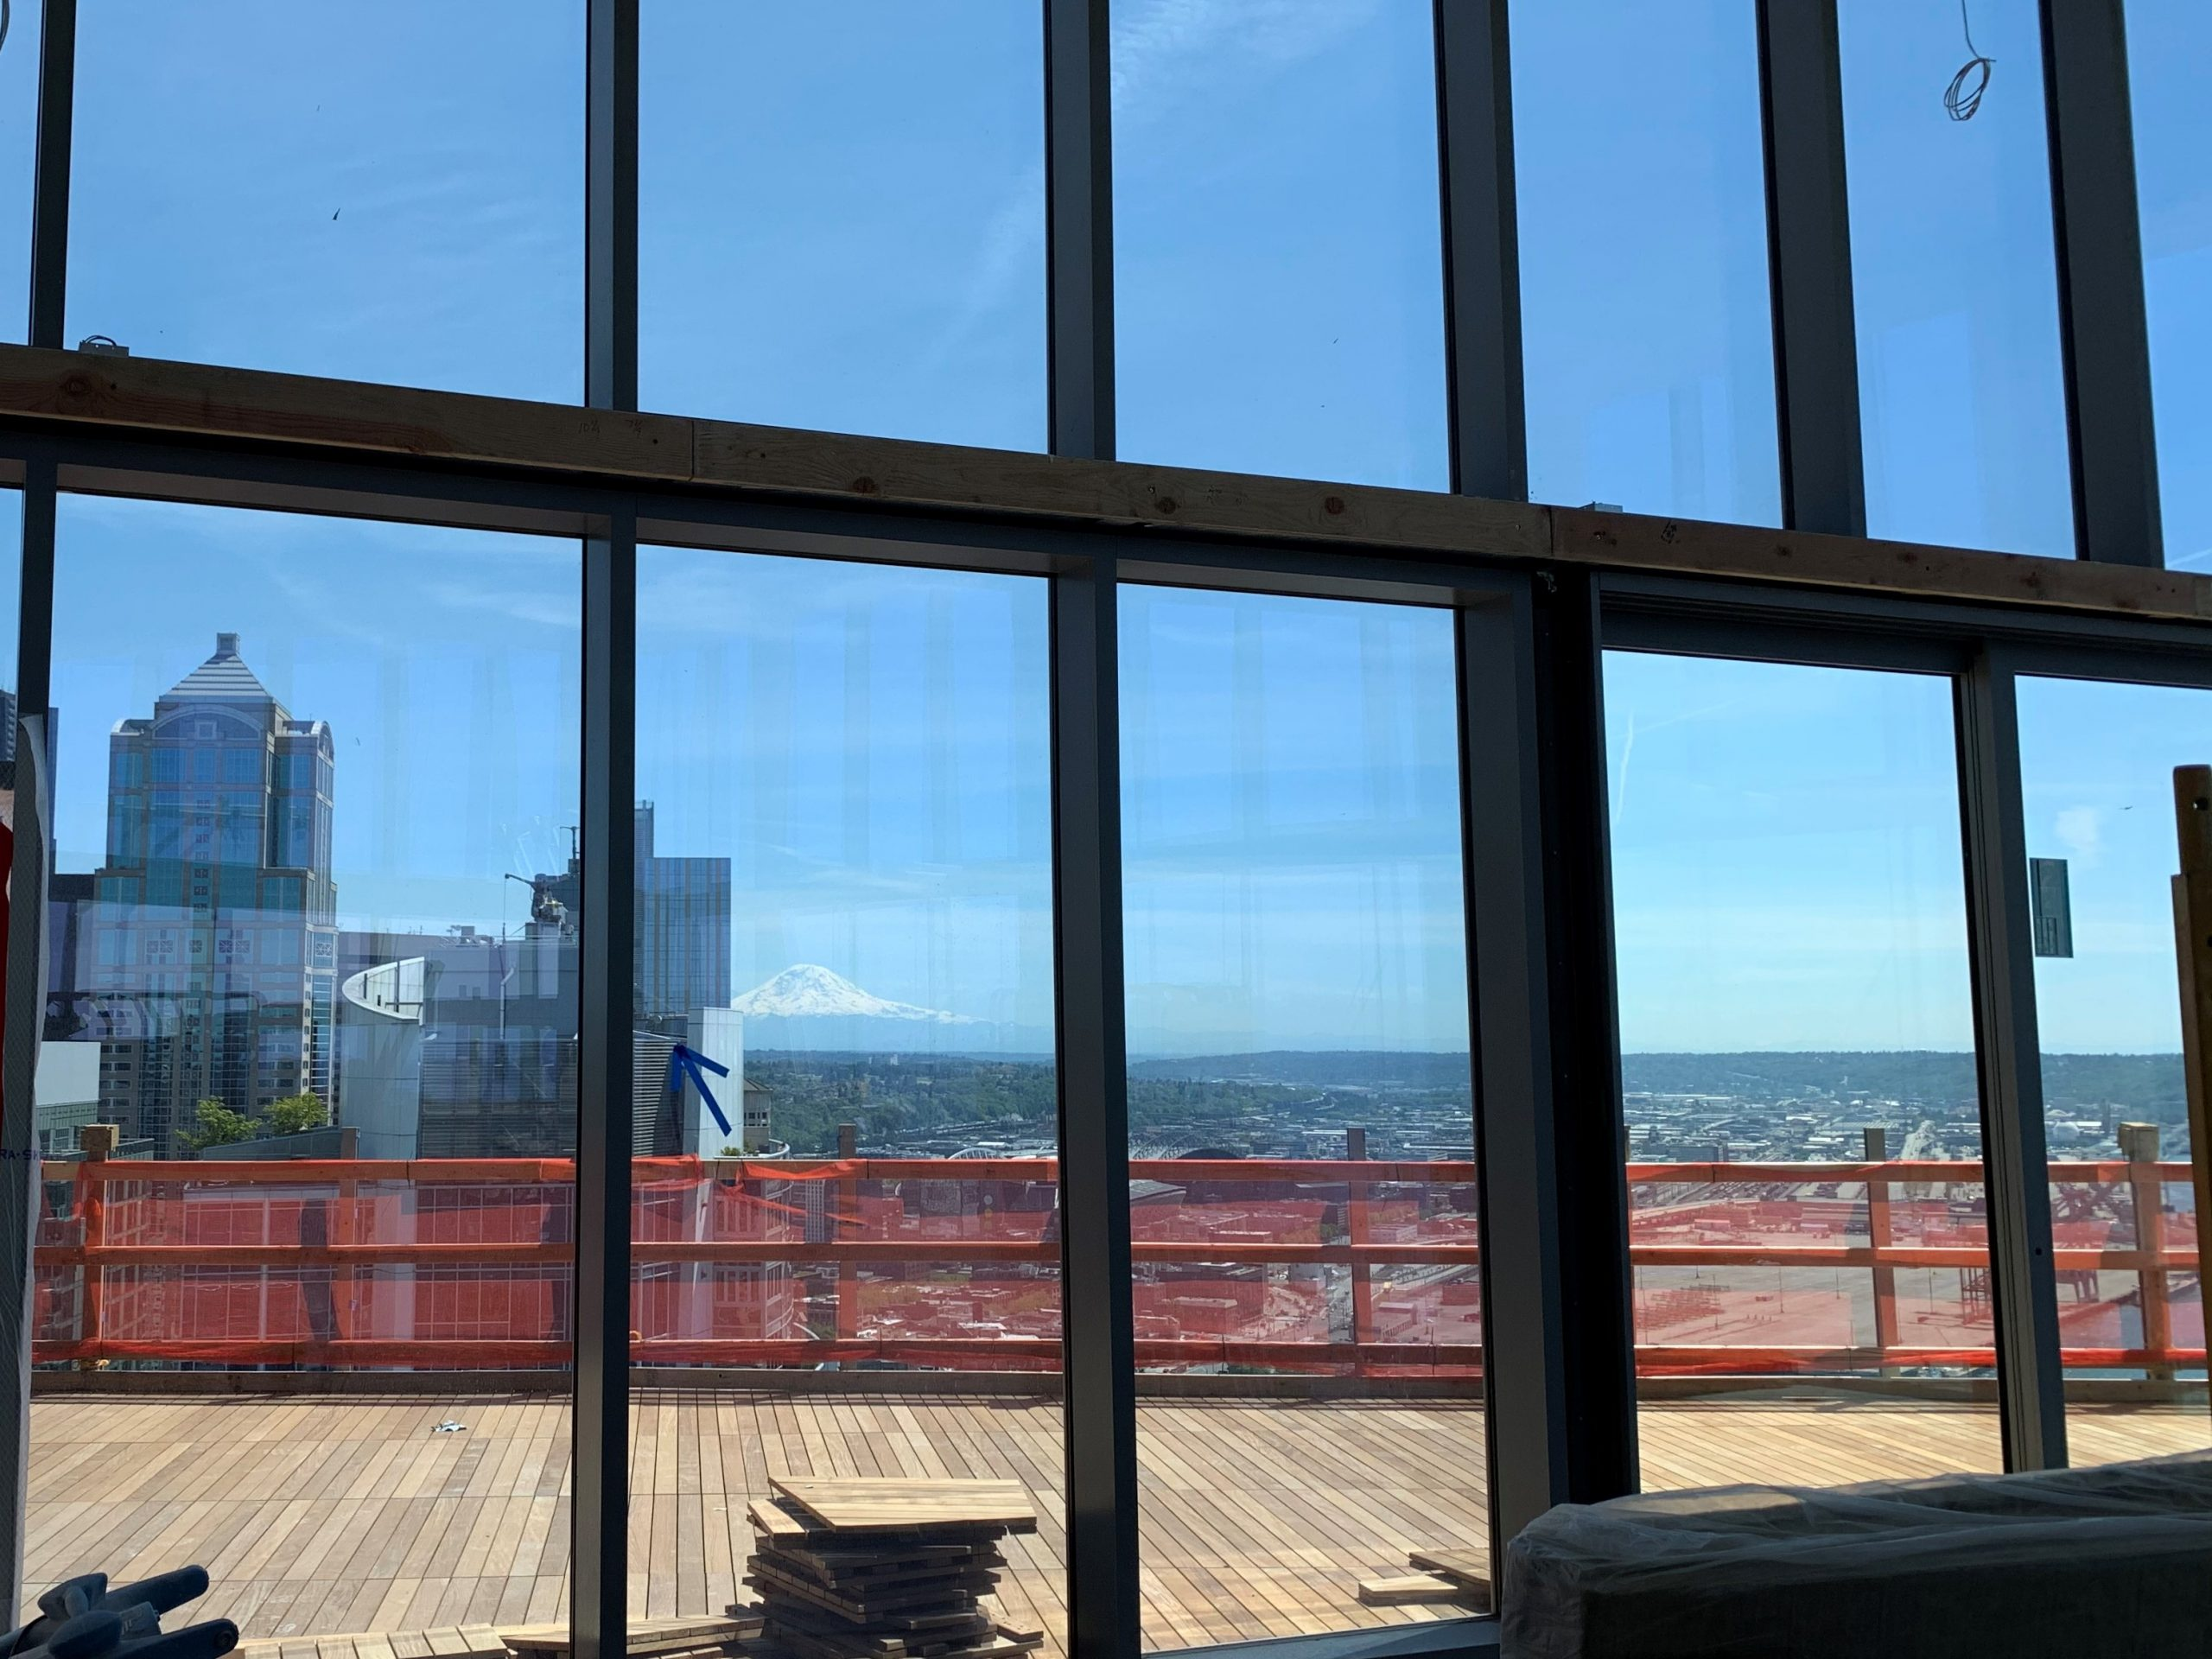 New Seattle condos coming soon: Emerald Construction Update